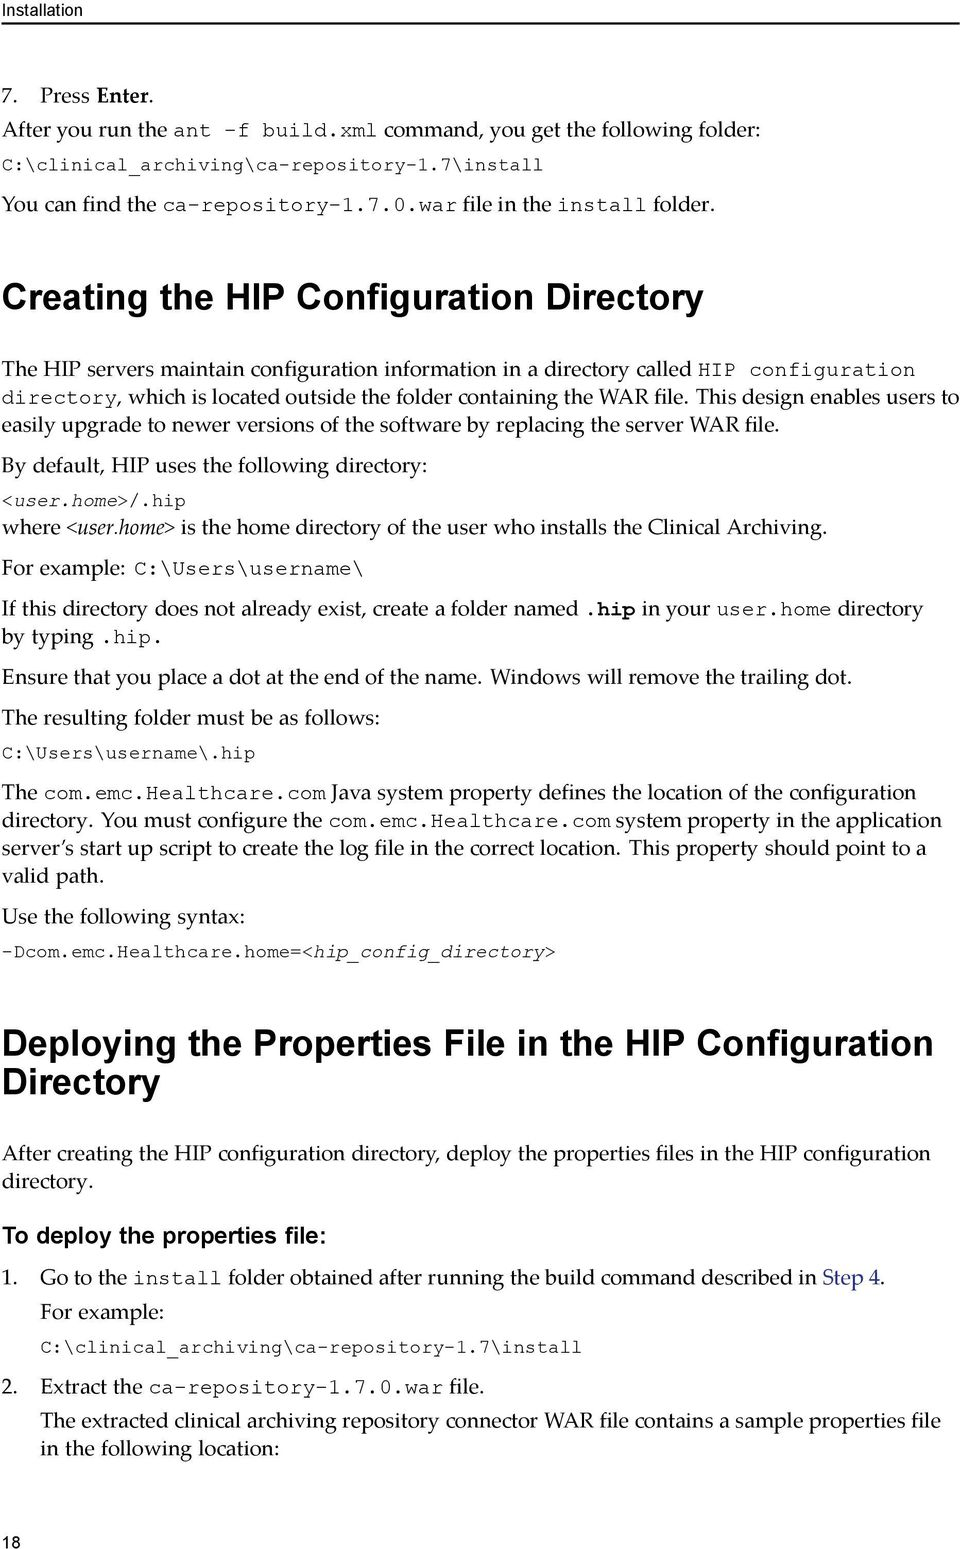 Creating the HIP Configuration Directory The HIP servers maintain configuration information in a directory called HIP configuration directory, which is located outside the folder containing the WAR